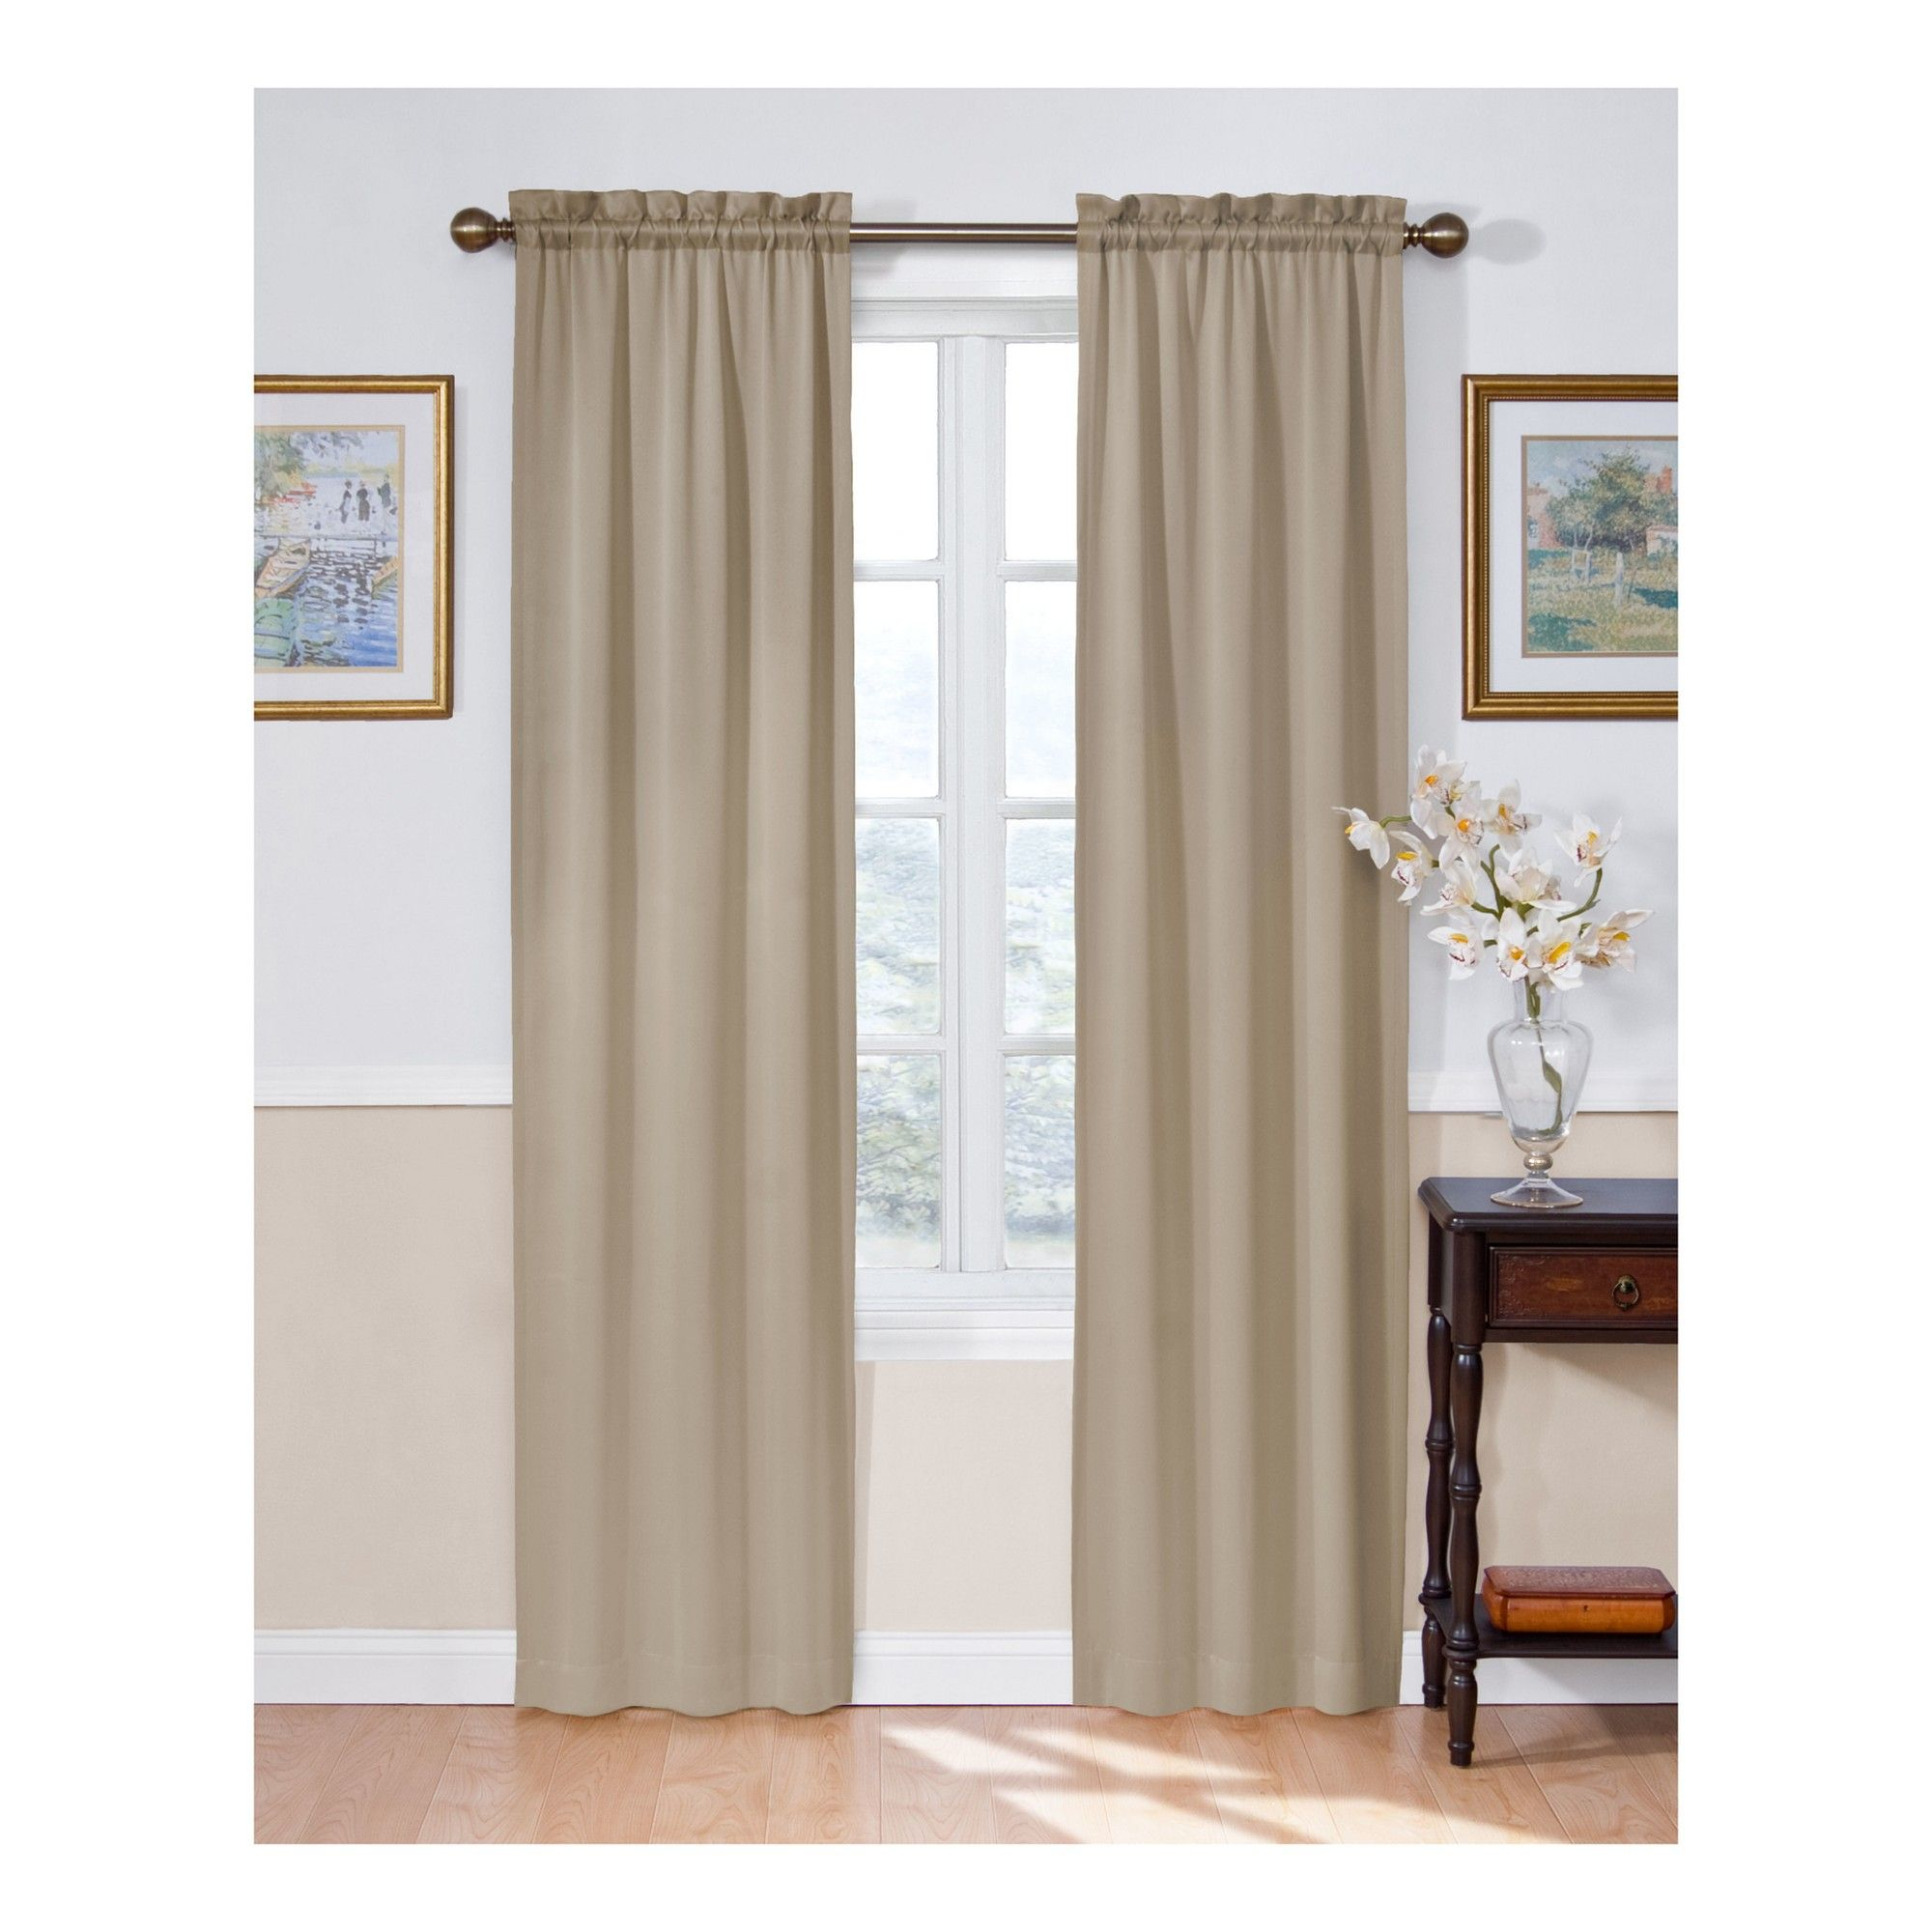 Solid Thermapanel Room Darkening Curtain Taupe (brown) 54x63 Throughout Eclipse Solid Thermapanel Room Darkening Single Panel (View 14 of 20)